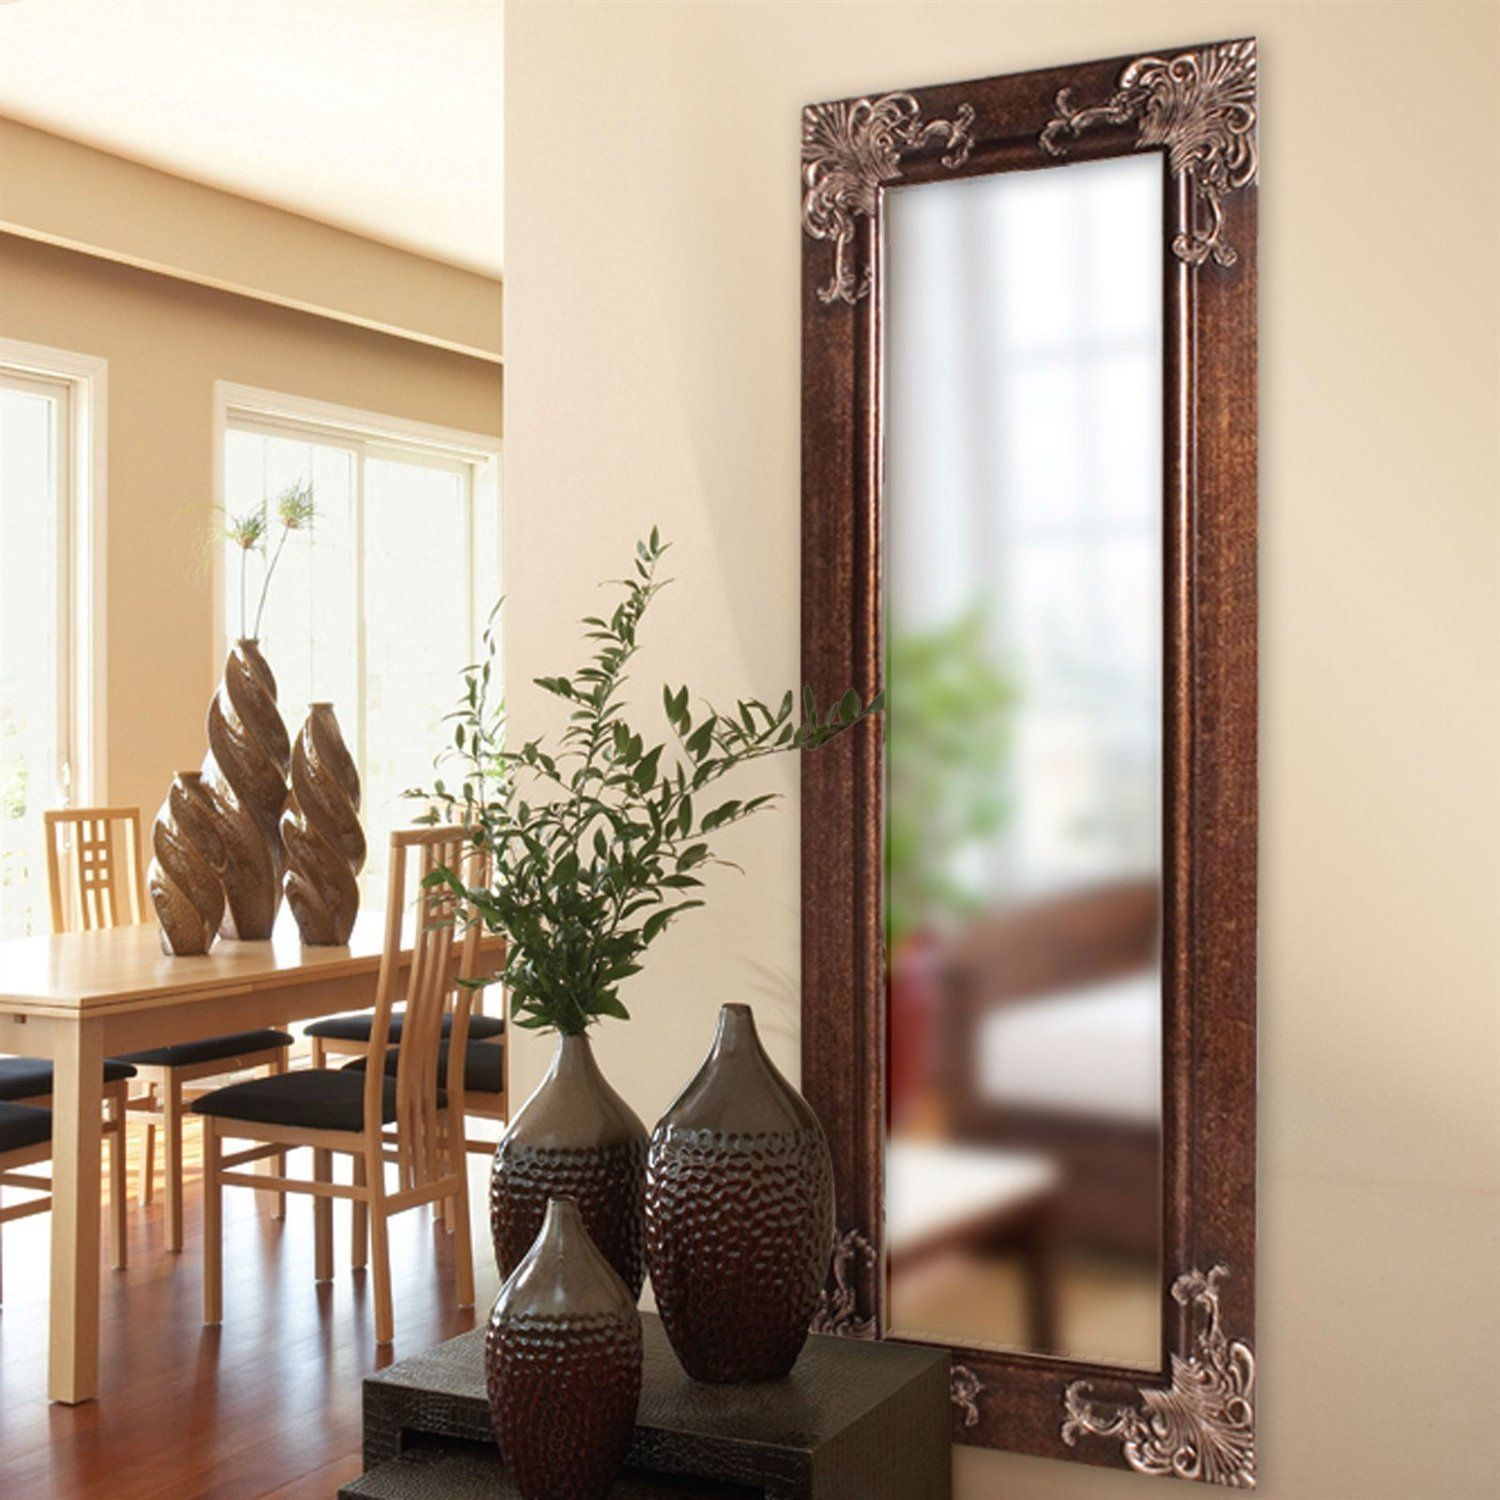 Full Length 63in Wall Mirror with Quality Wood Frame and